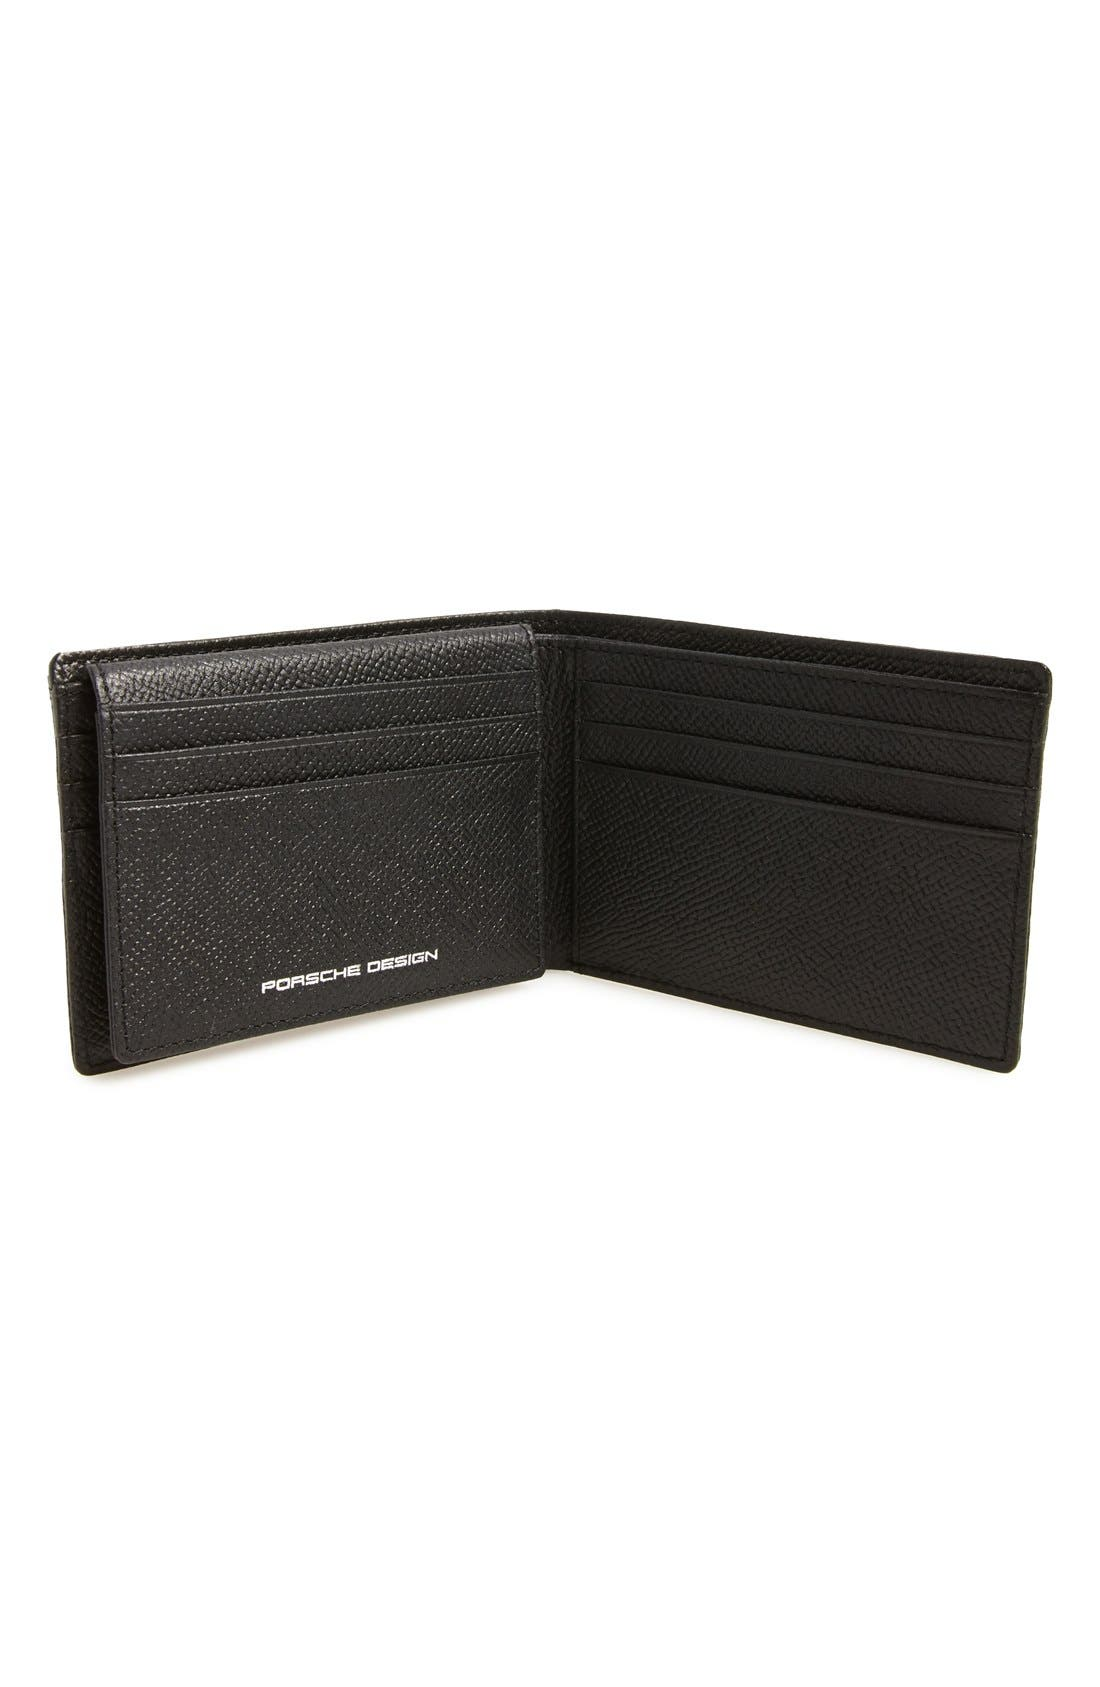 'FC 3.0' Leather L-Fold Wallet,                             Alternate thumbnail 2, color,                             001